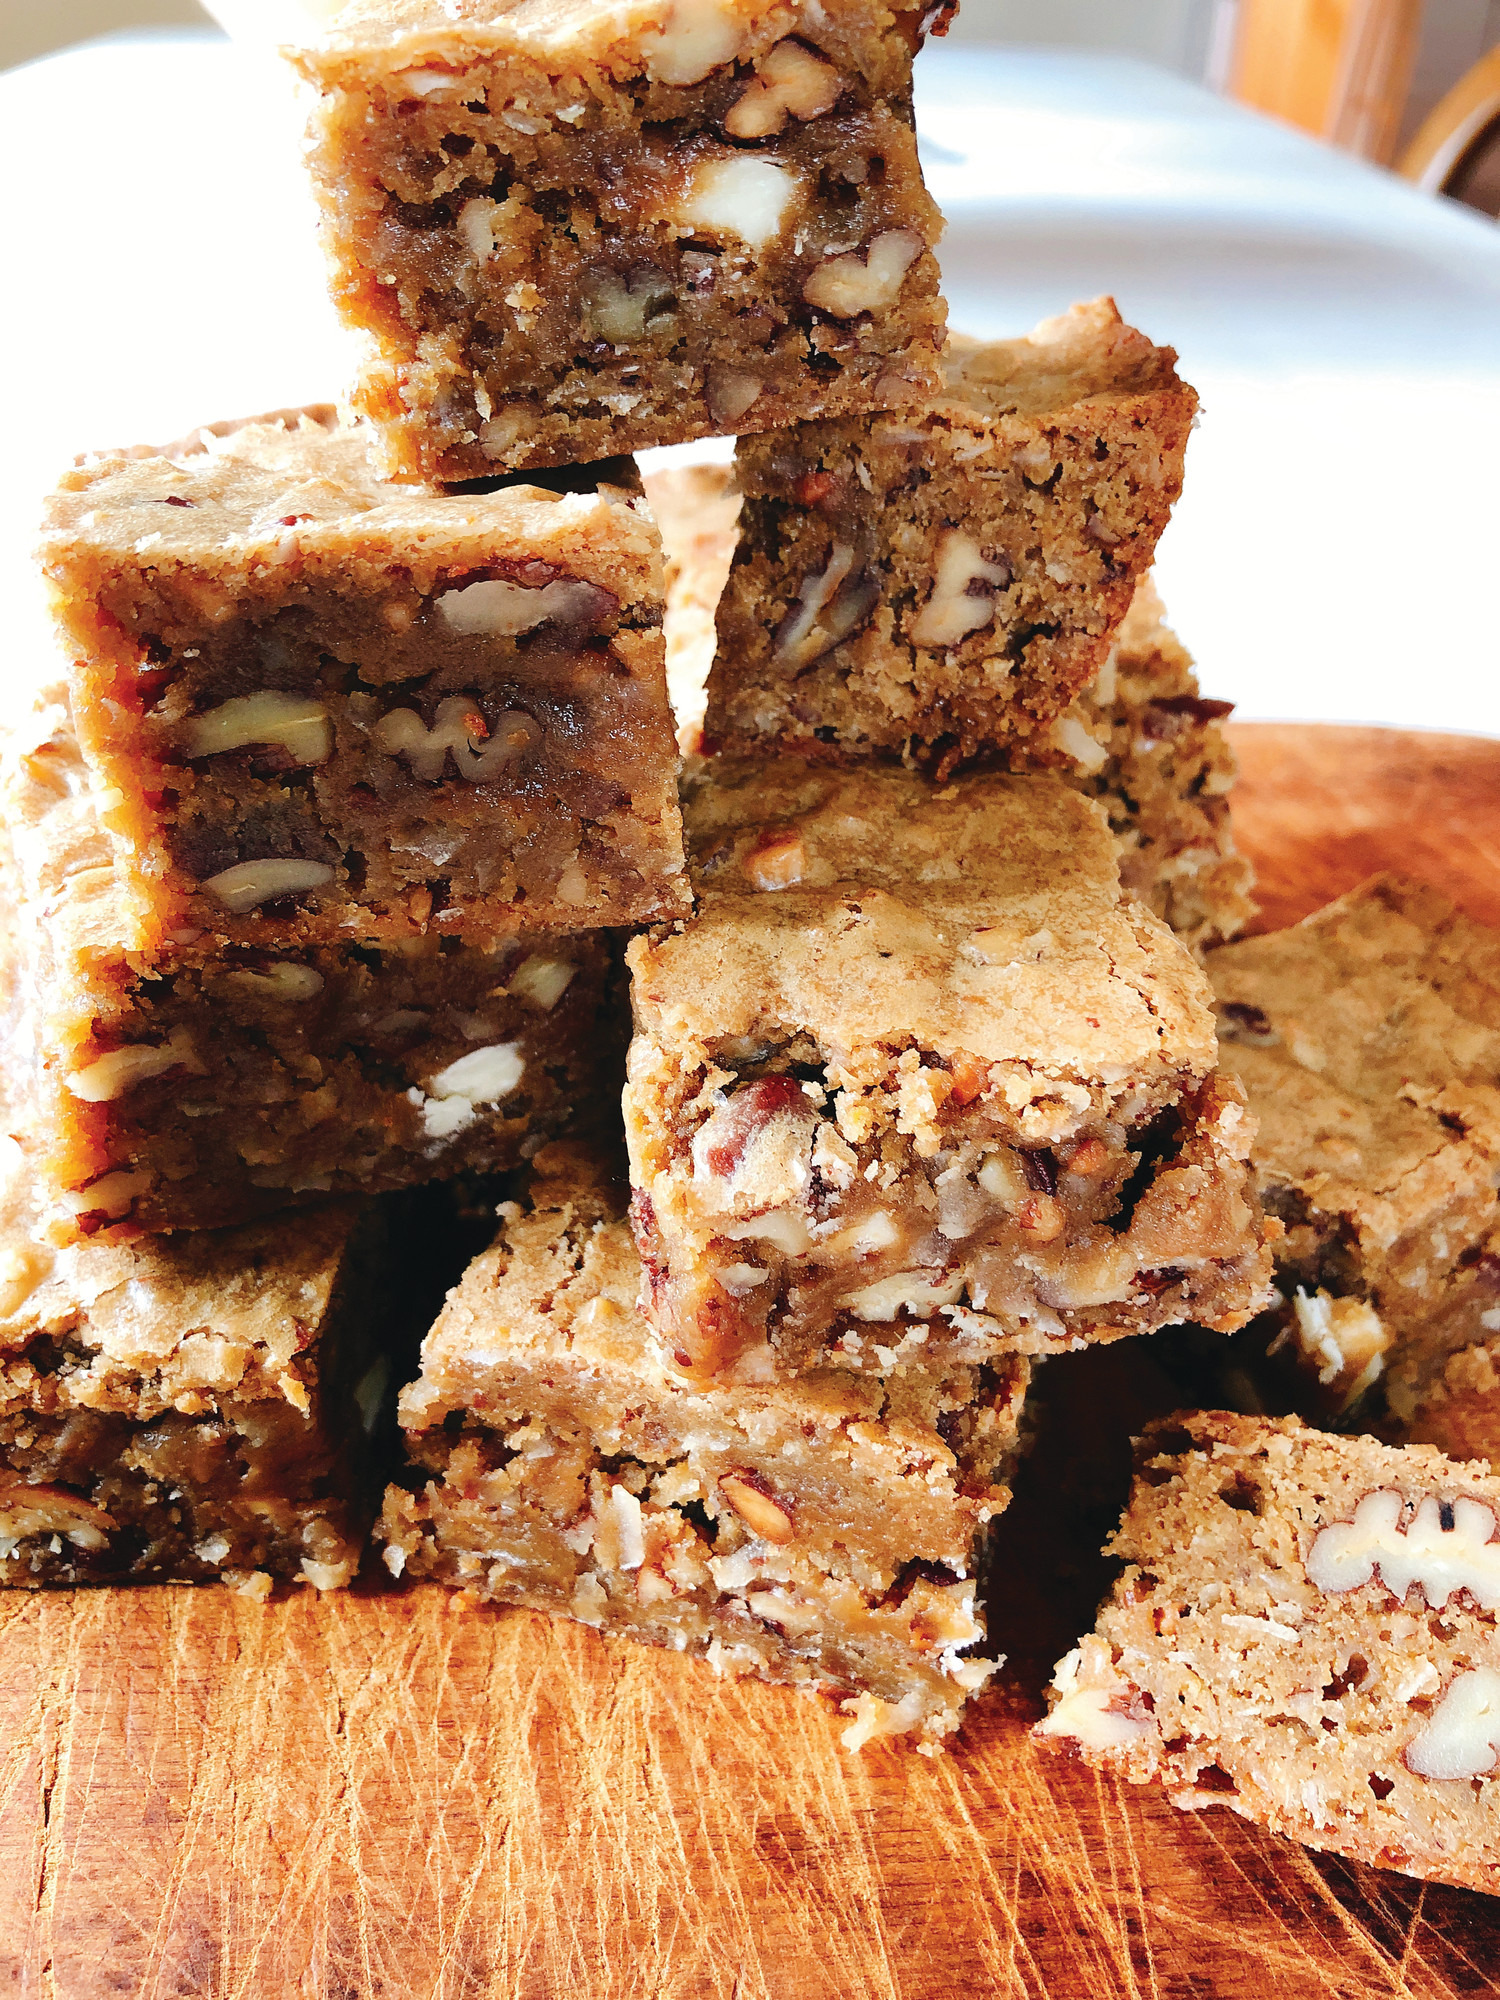 Toffee bars are packed full of pecans, toffee bits, chopped white chocolate and dried coconut, but the sprinkling of bourbon is what really takes them over the edge.